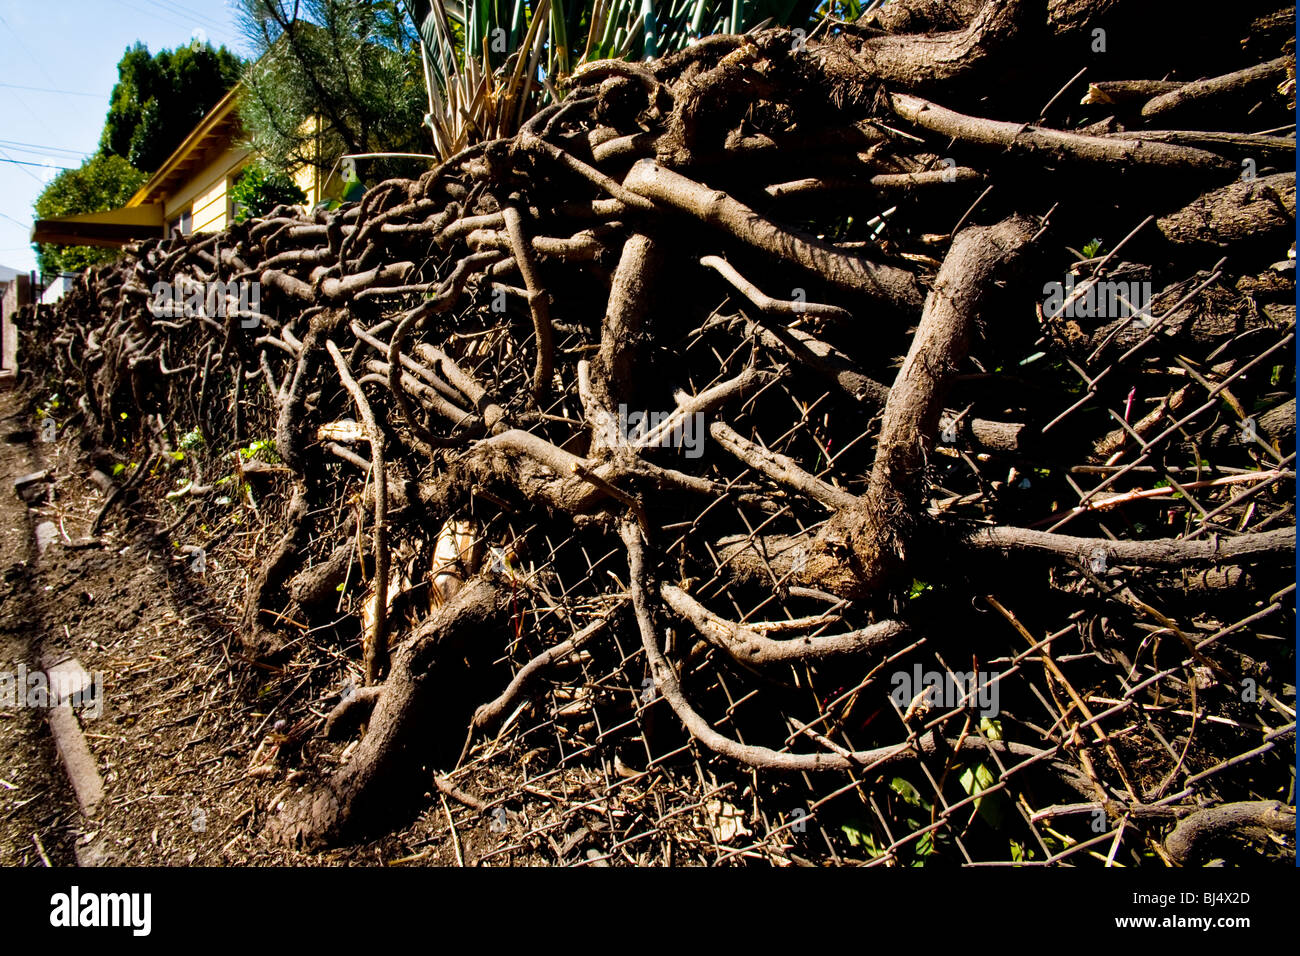 The Tangled Roots Of Algerian Ivy Vine On A Chain Link